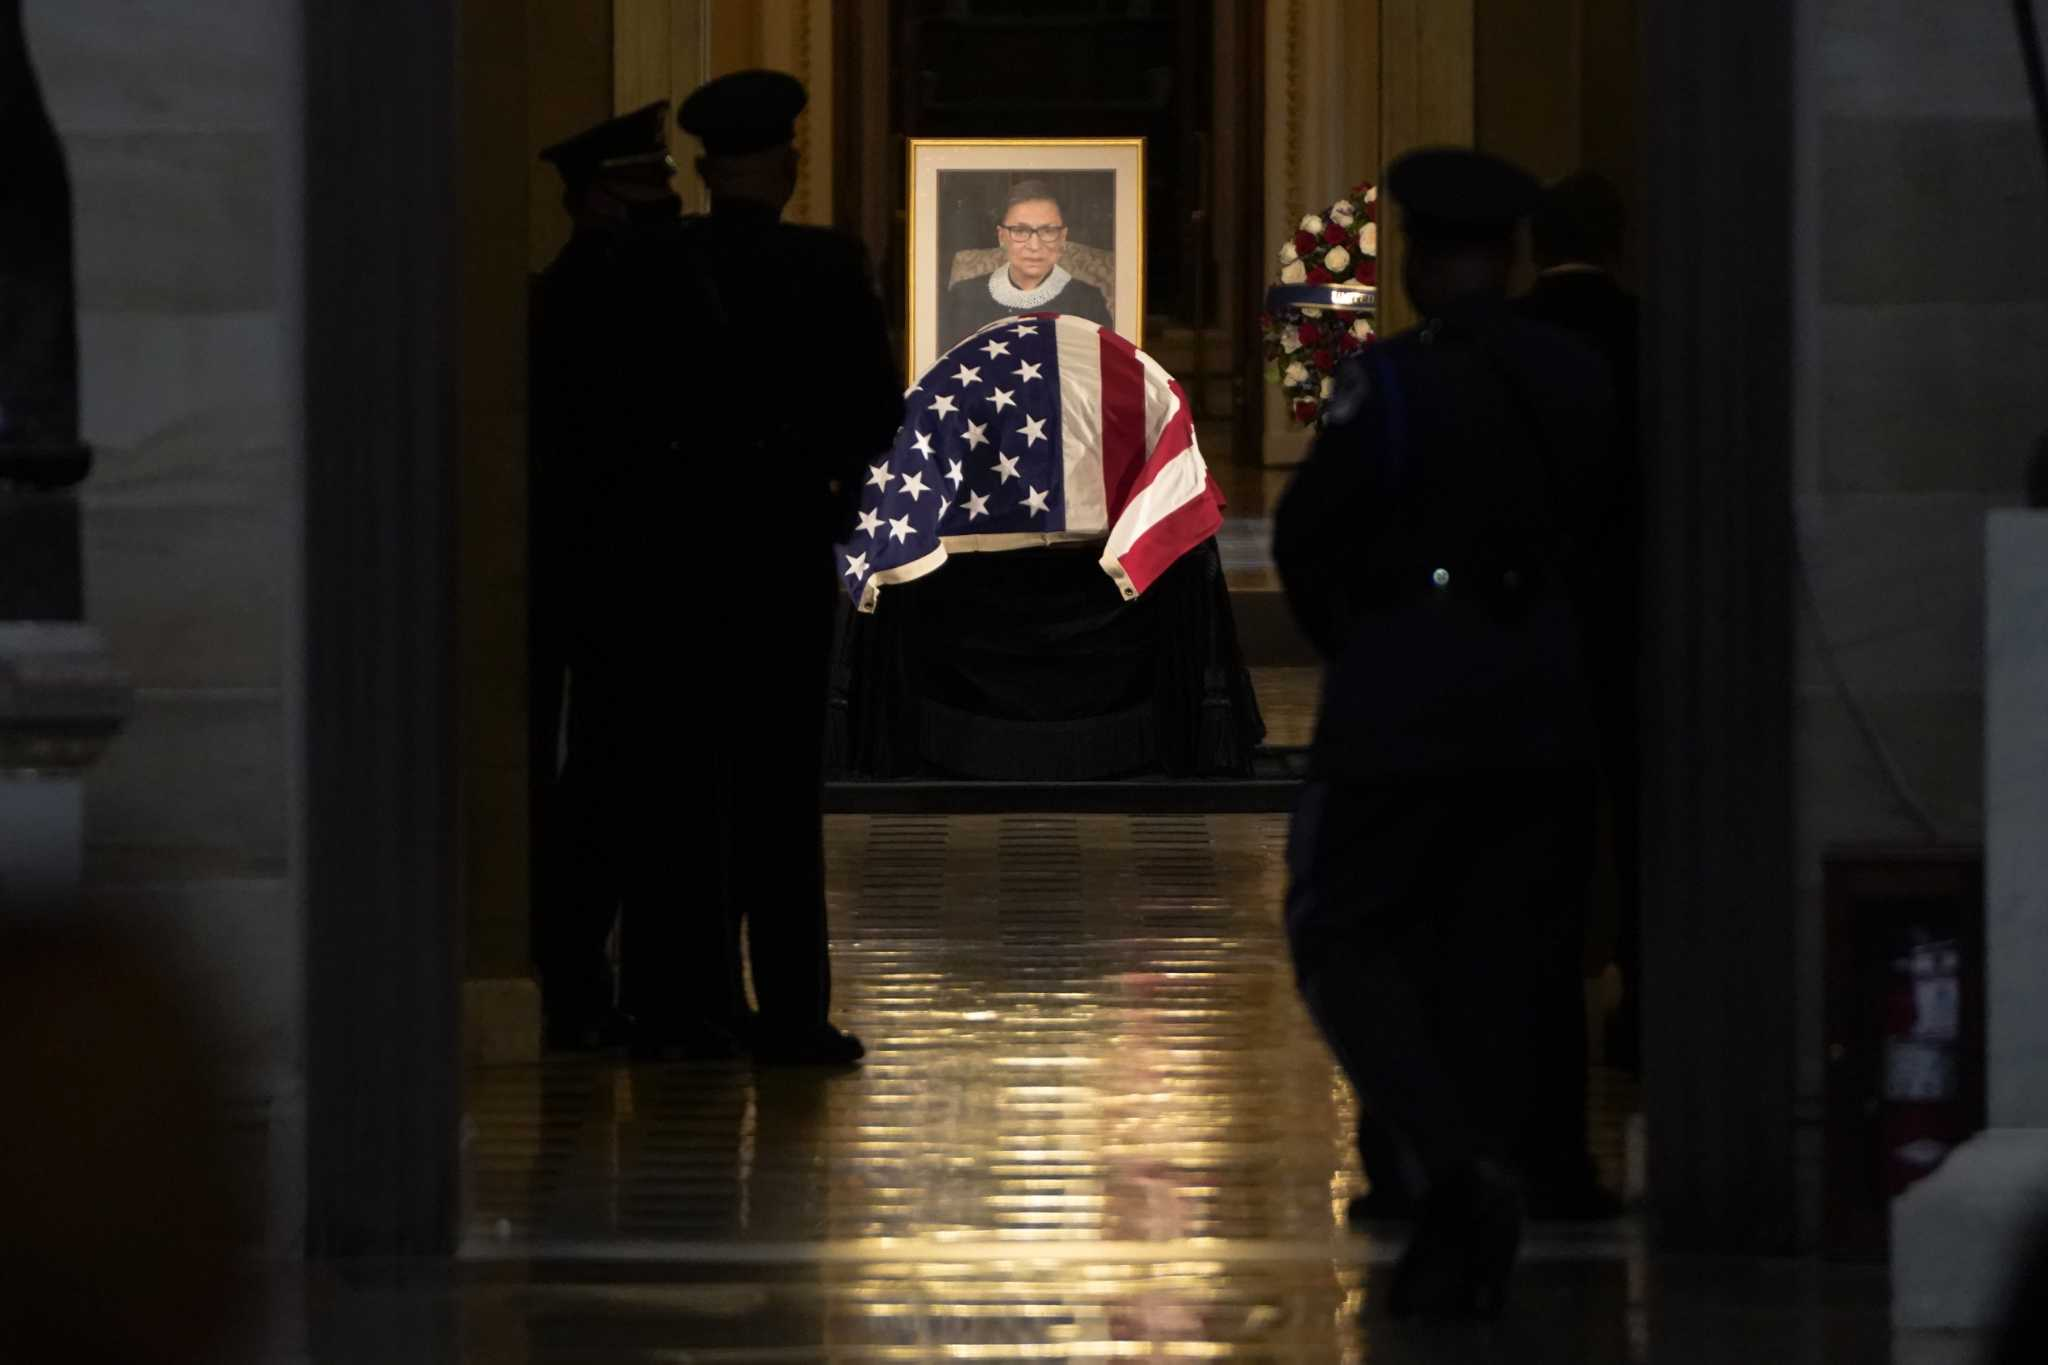 Ginsburg breaks one final barrier as first woman to lie in state at Capitol